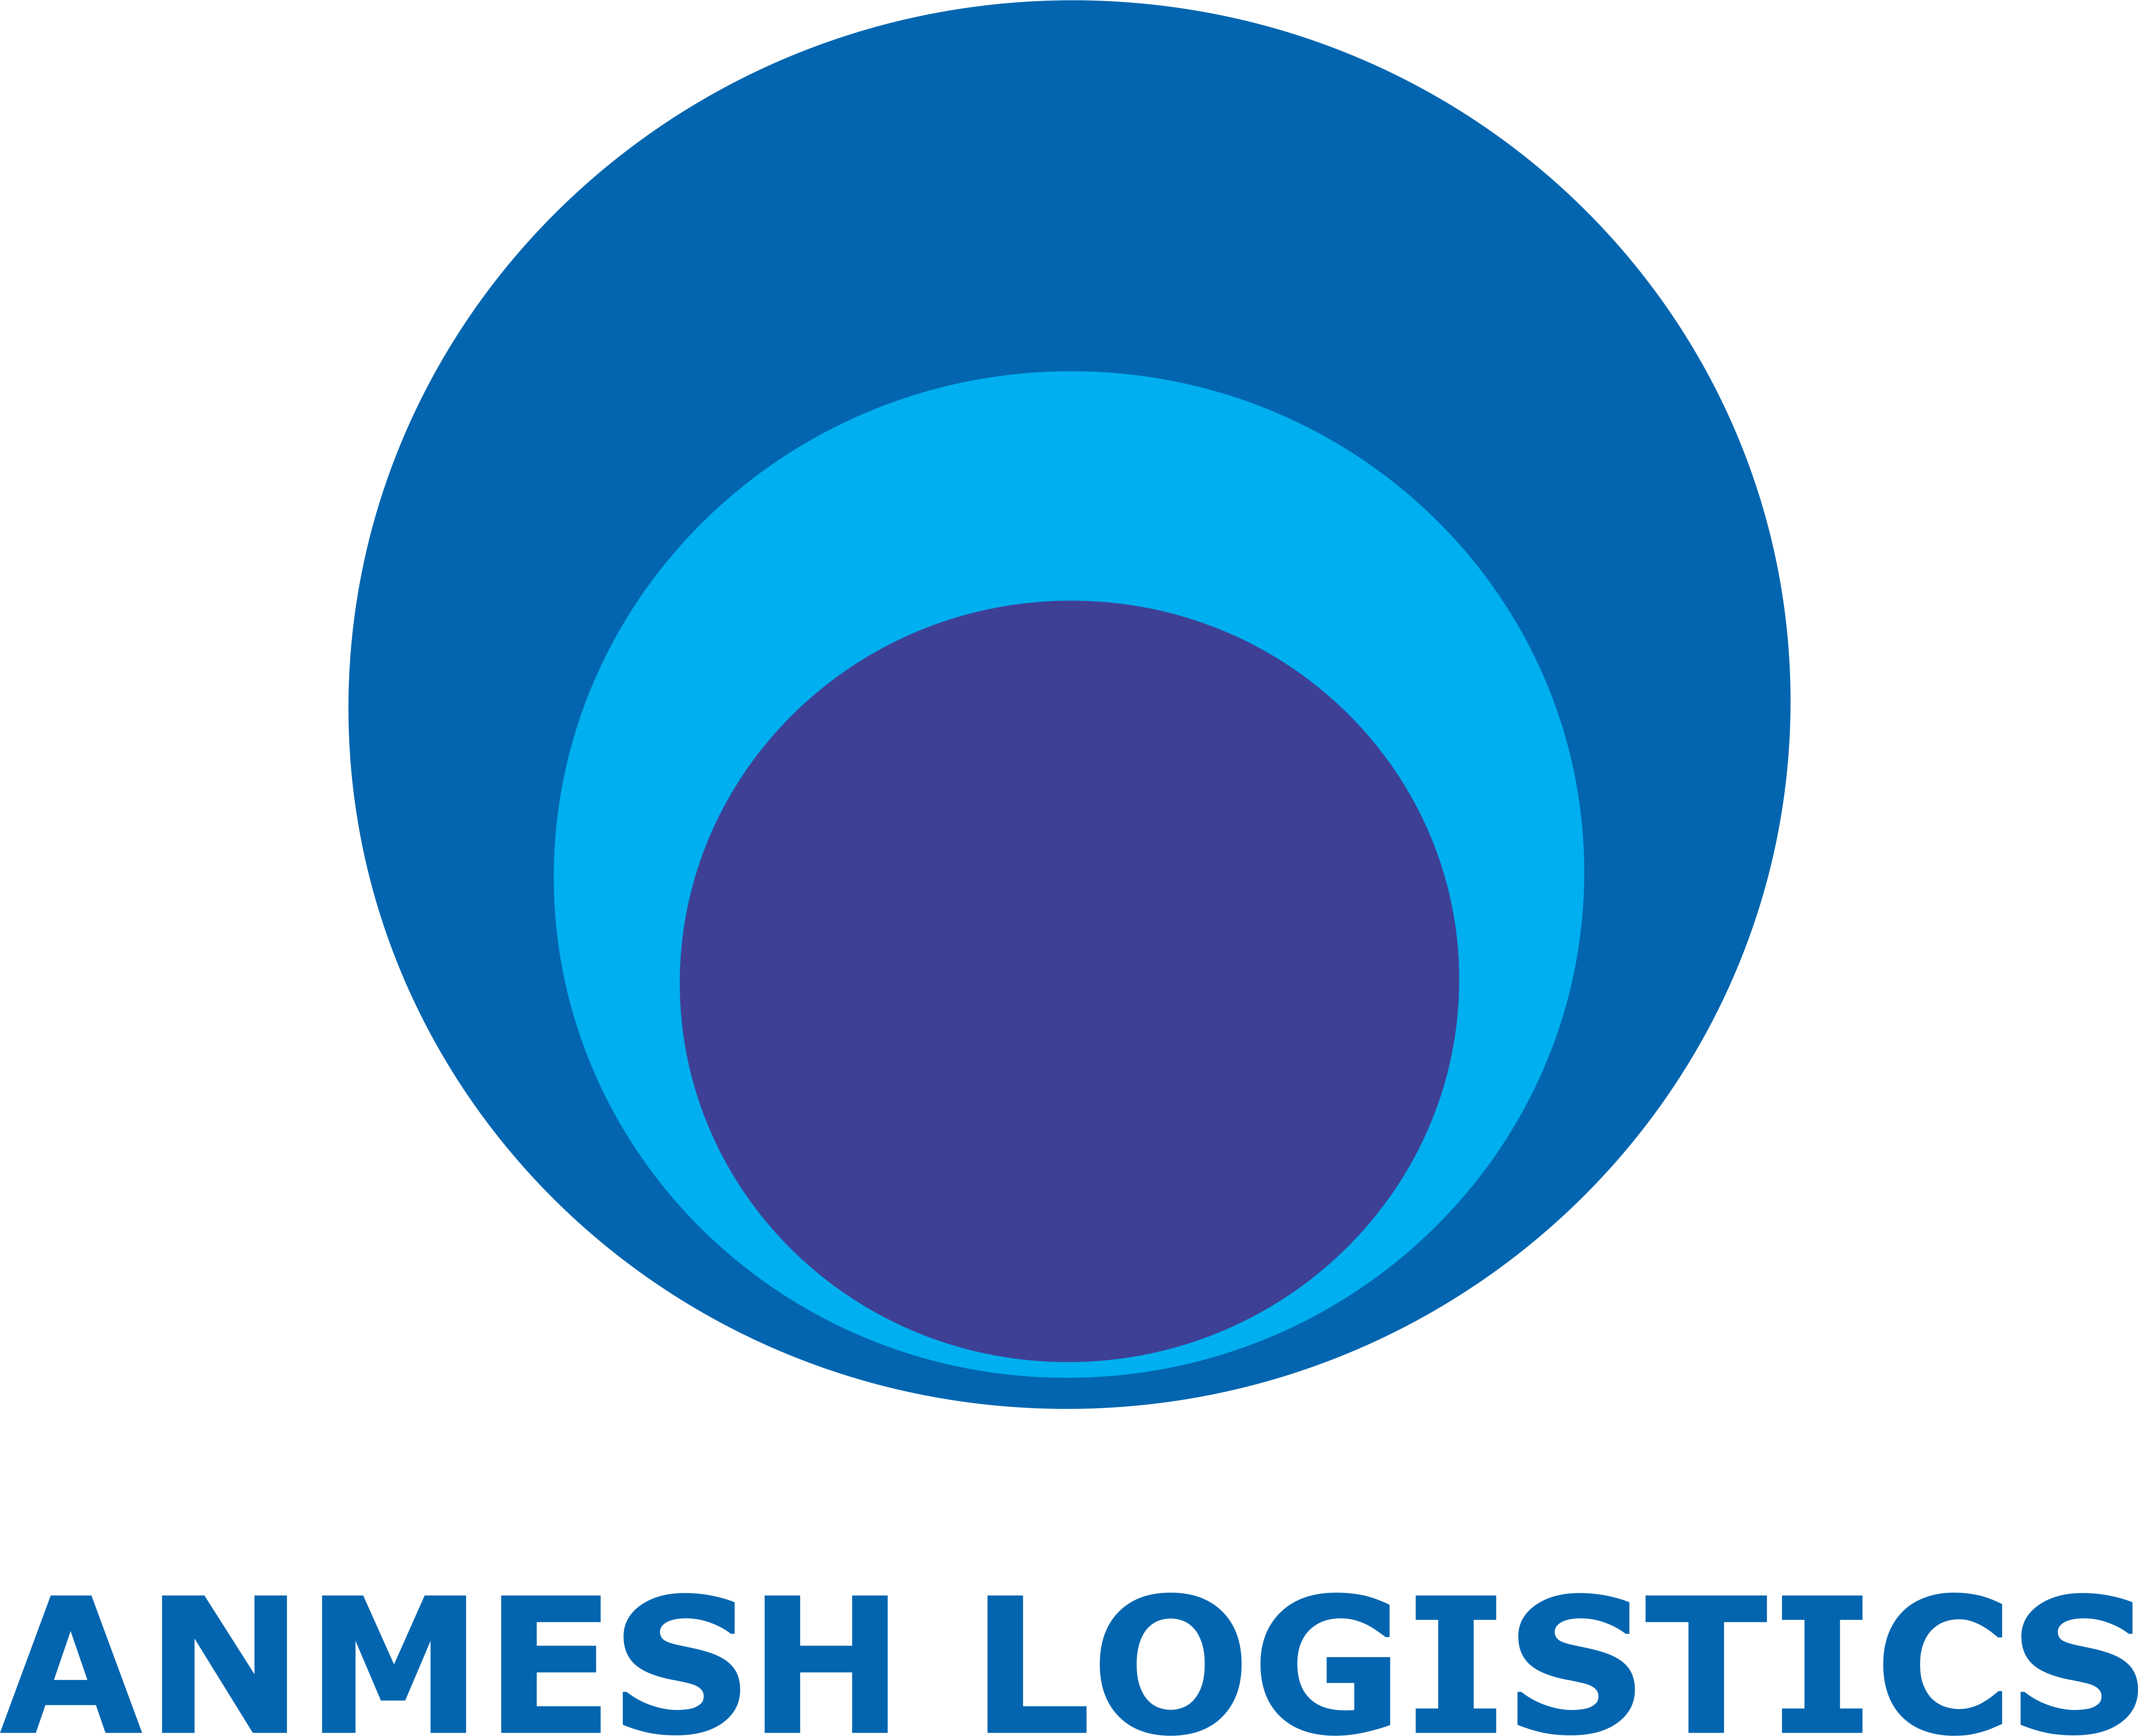 Anmesh Investments